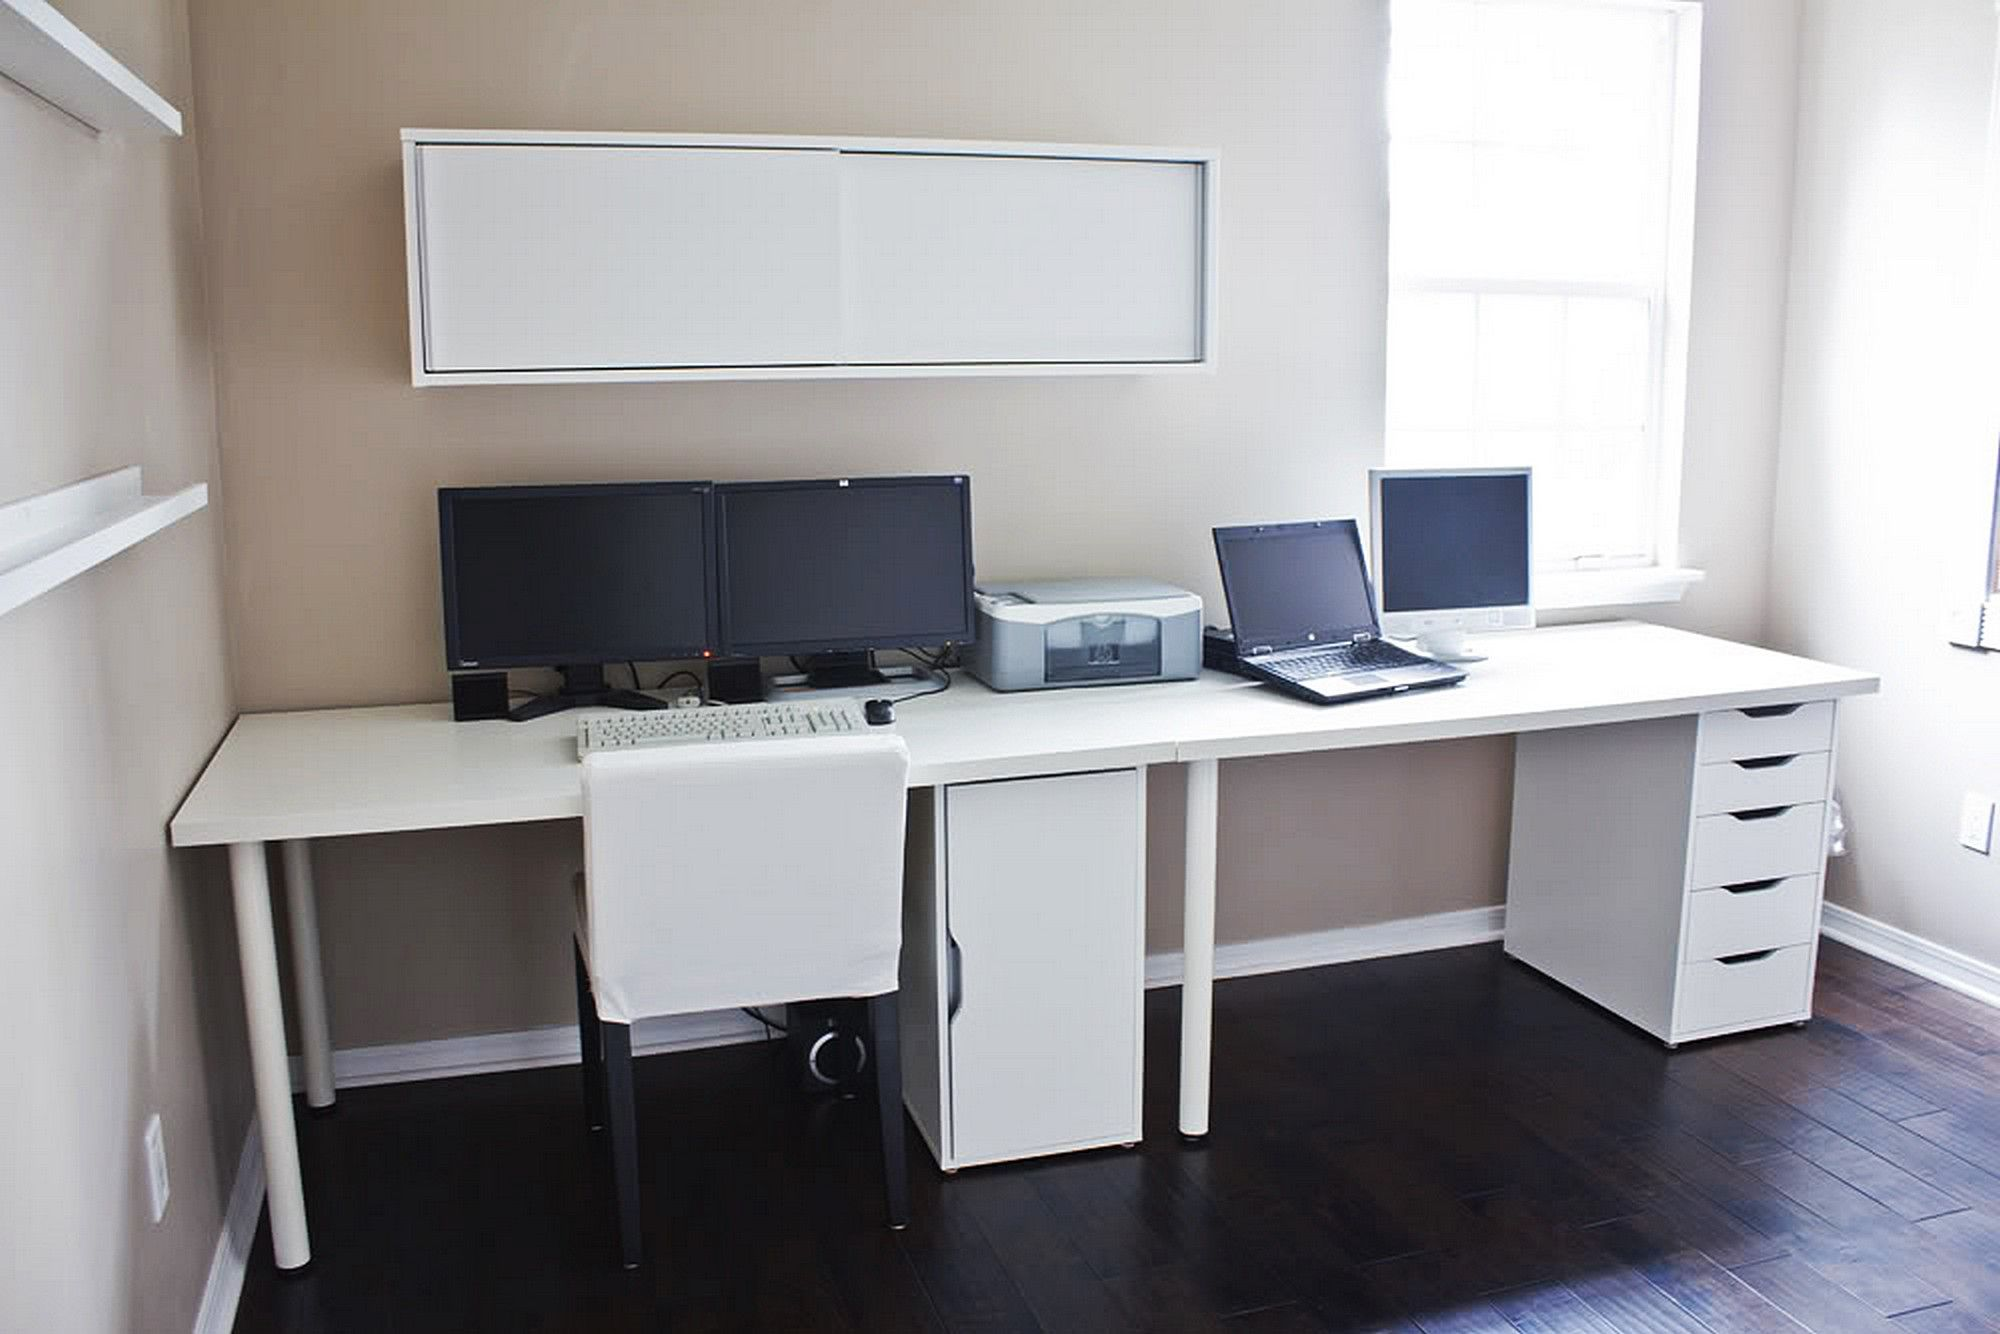 Clean white computer desk setup from ikea linnmon adils with alex storage drawer inside - Ikea furniture for small spaces minimalist ...